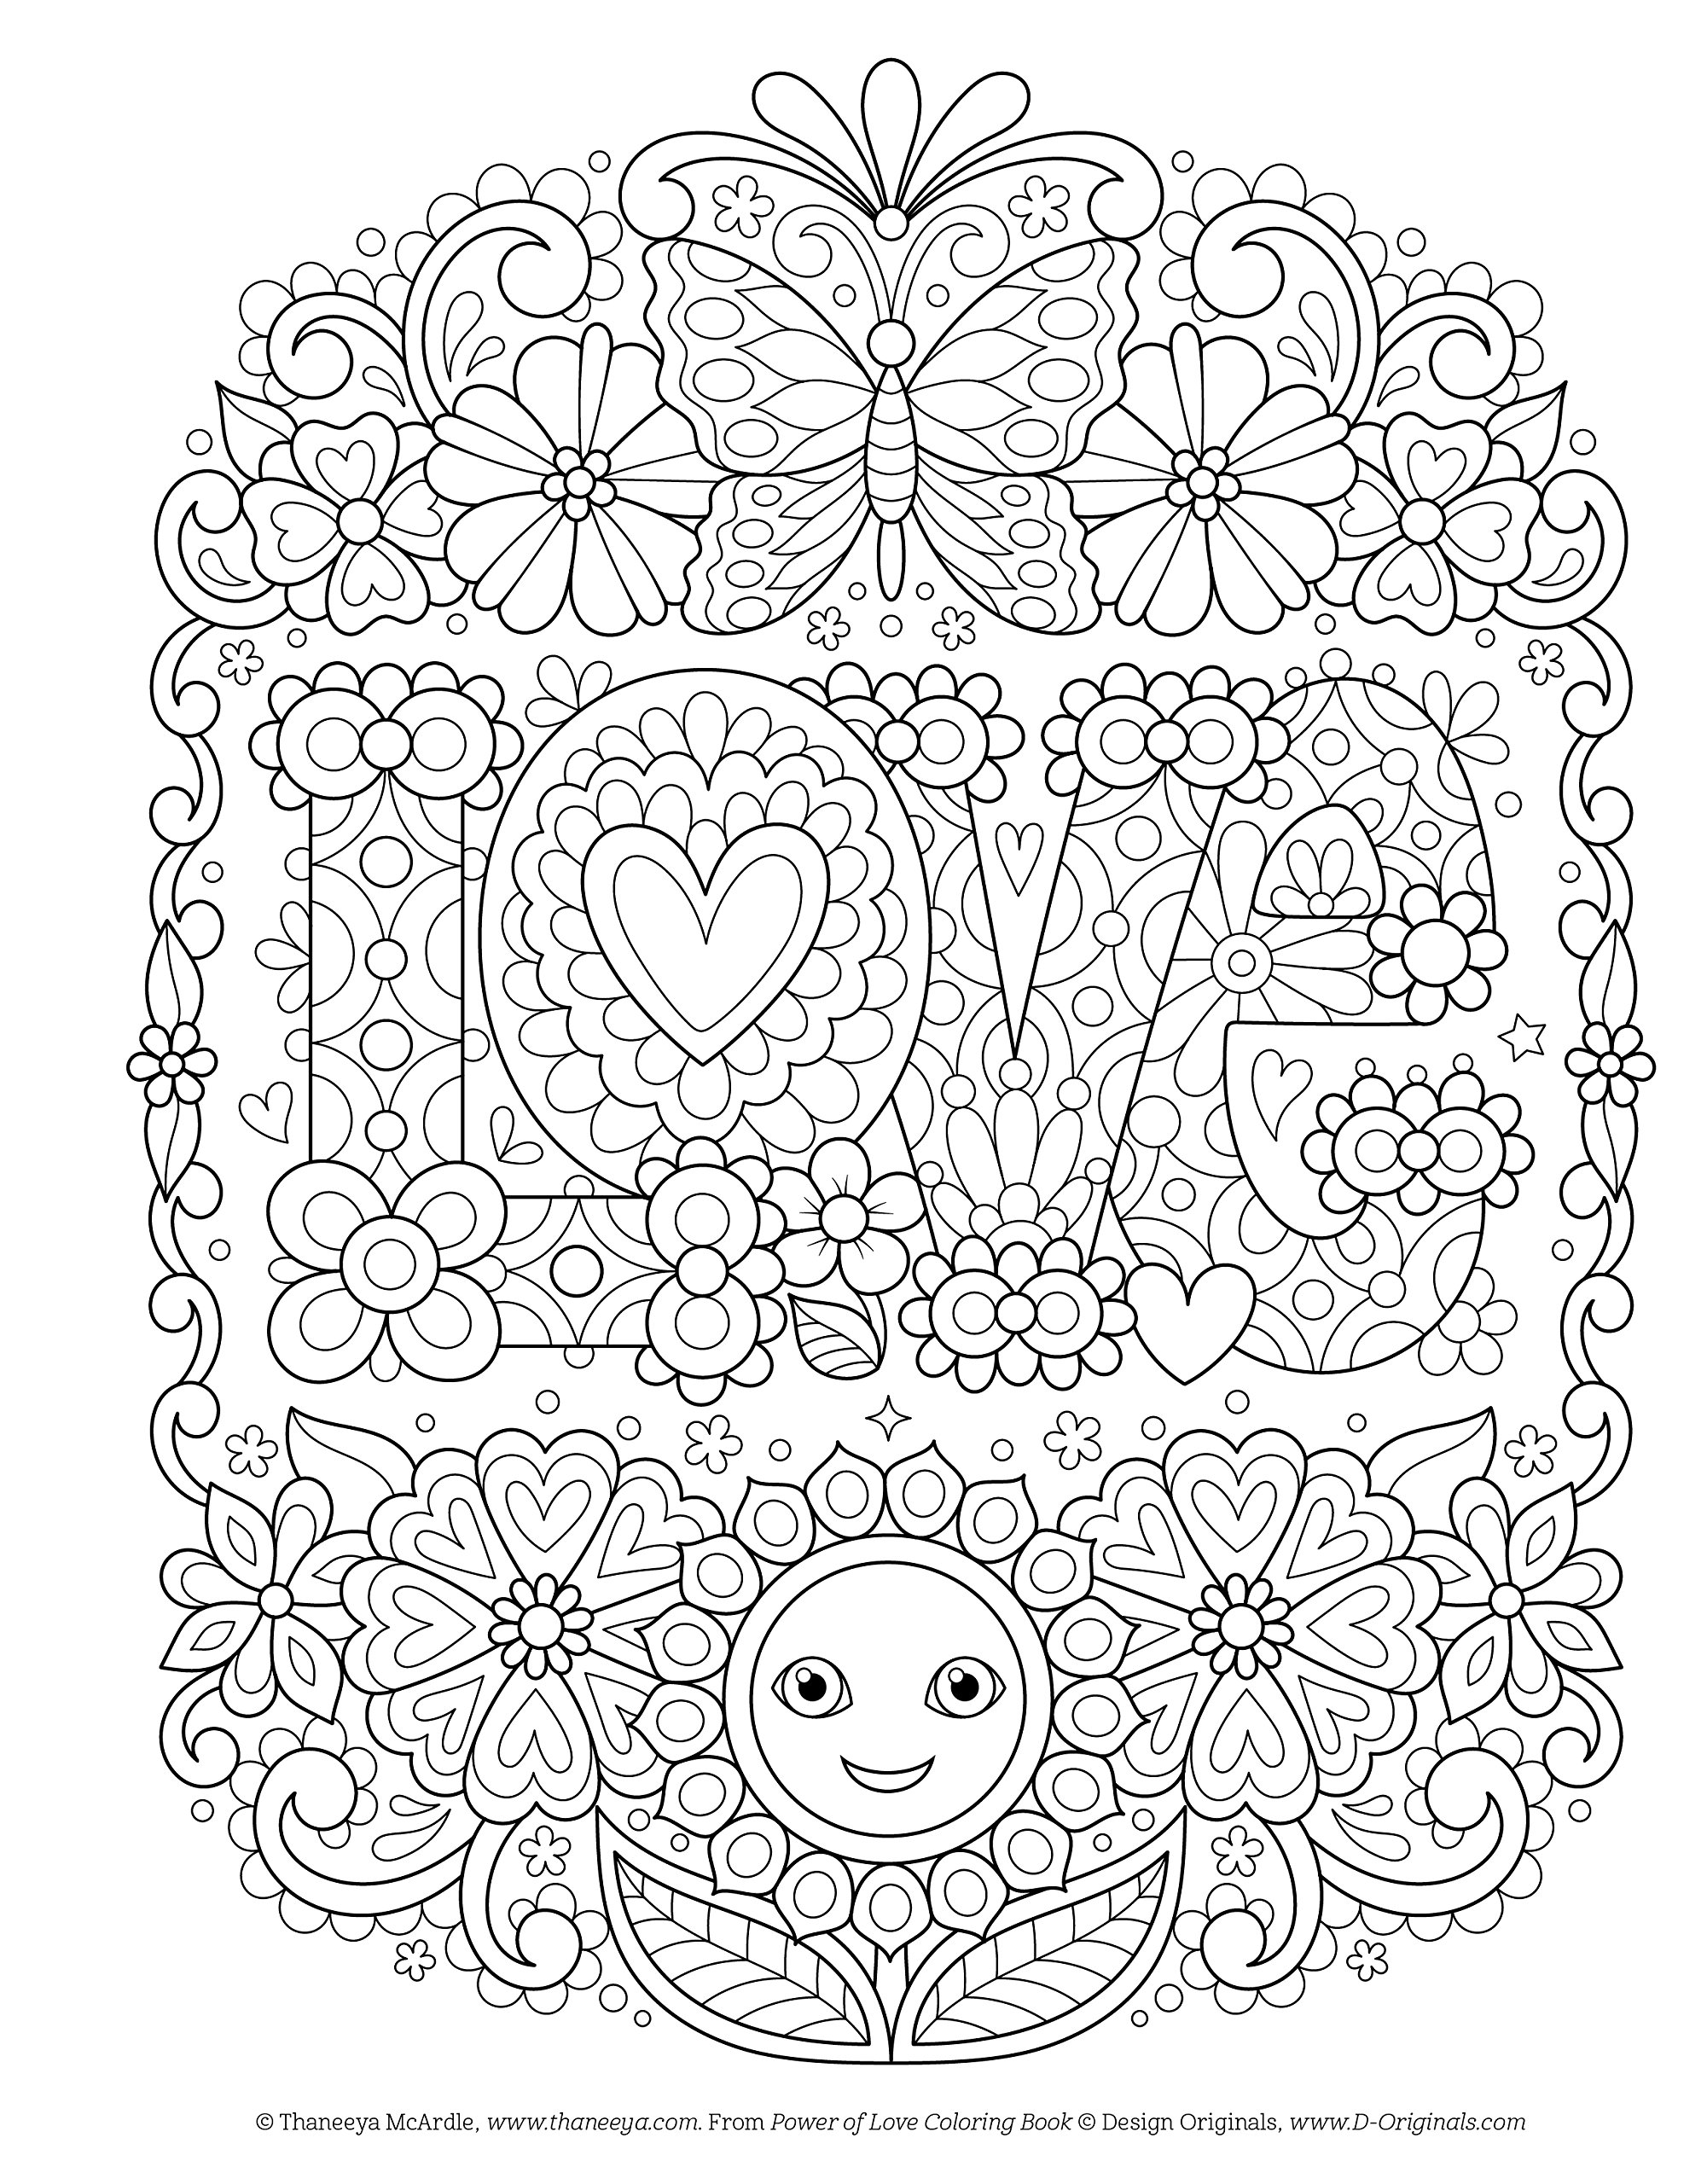 Power of Love Coloring Book (Coloring Is Fun): Amazon.de ...